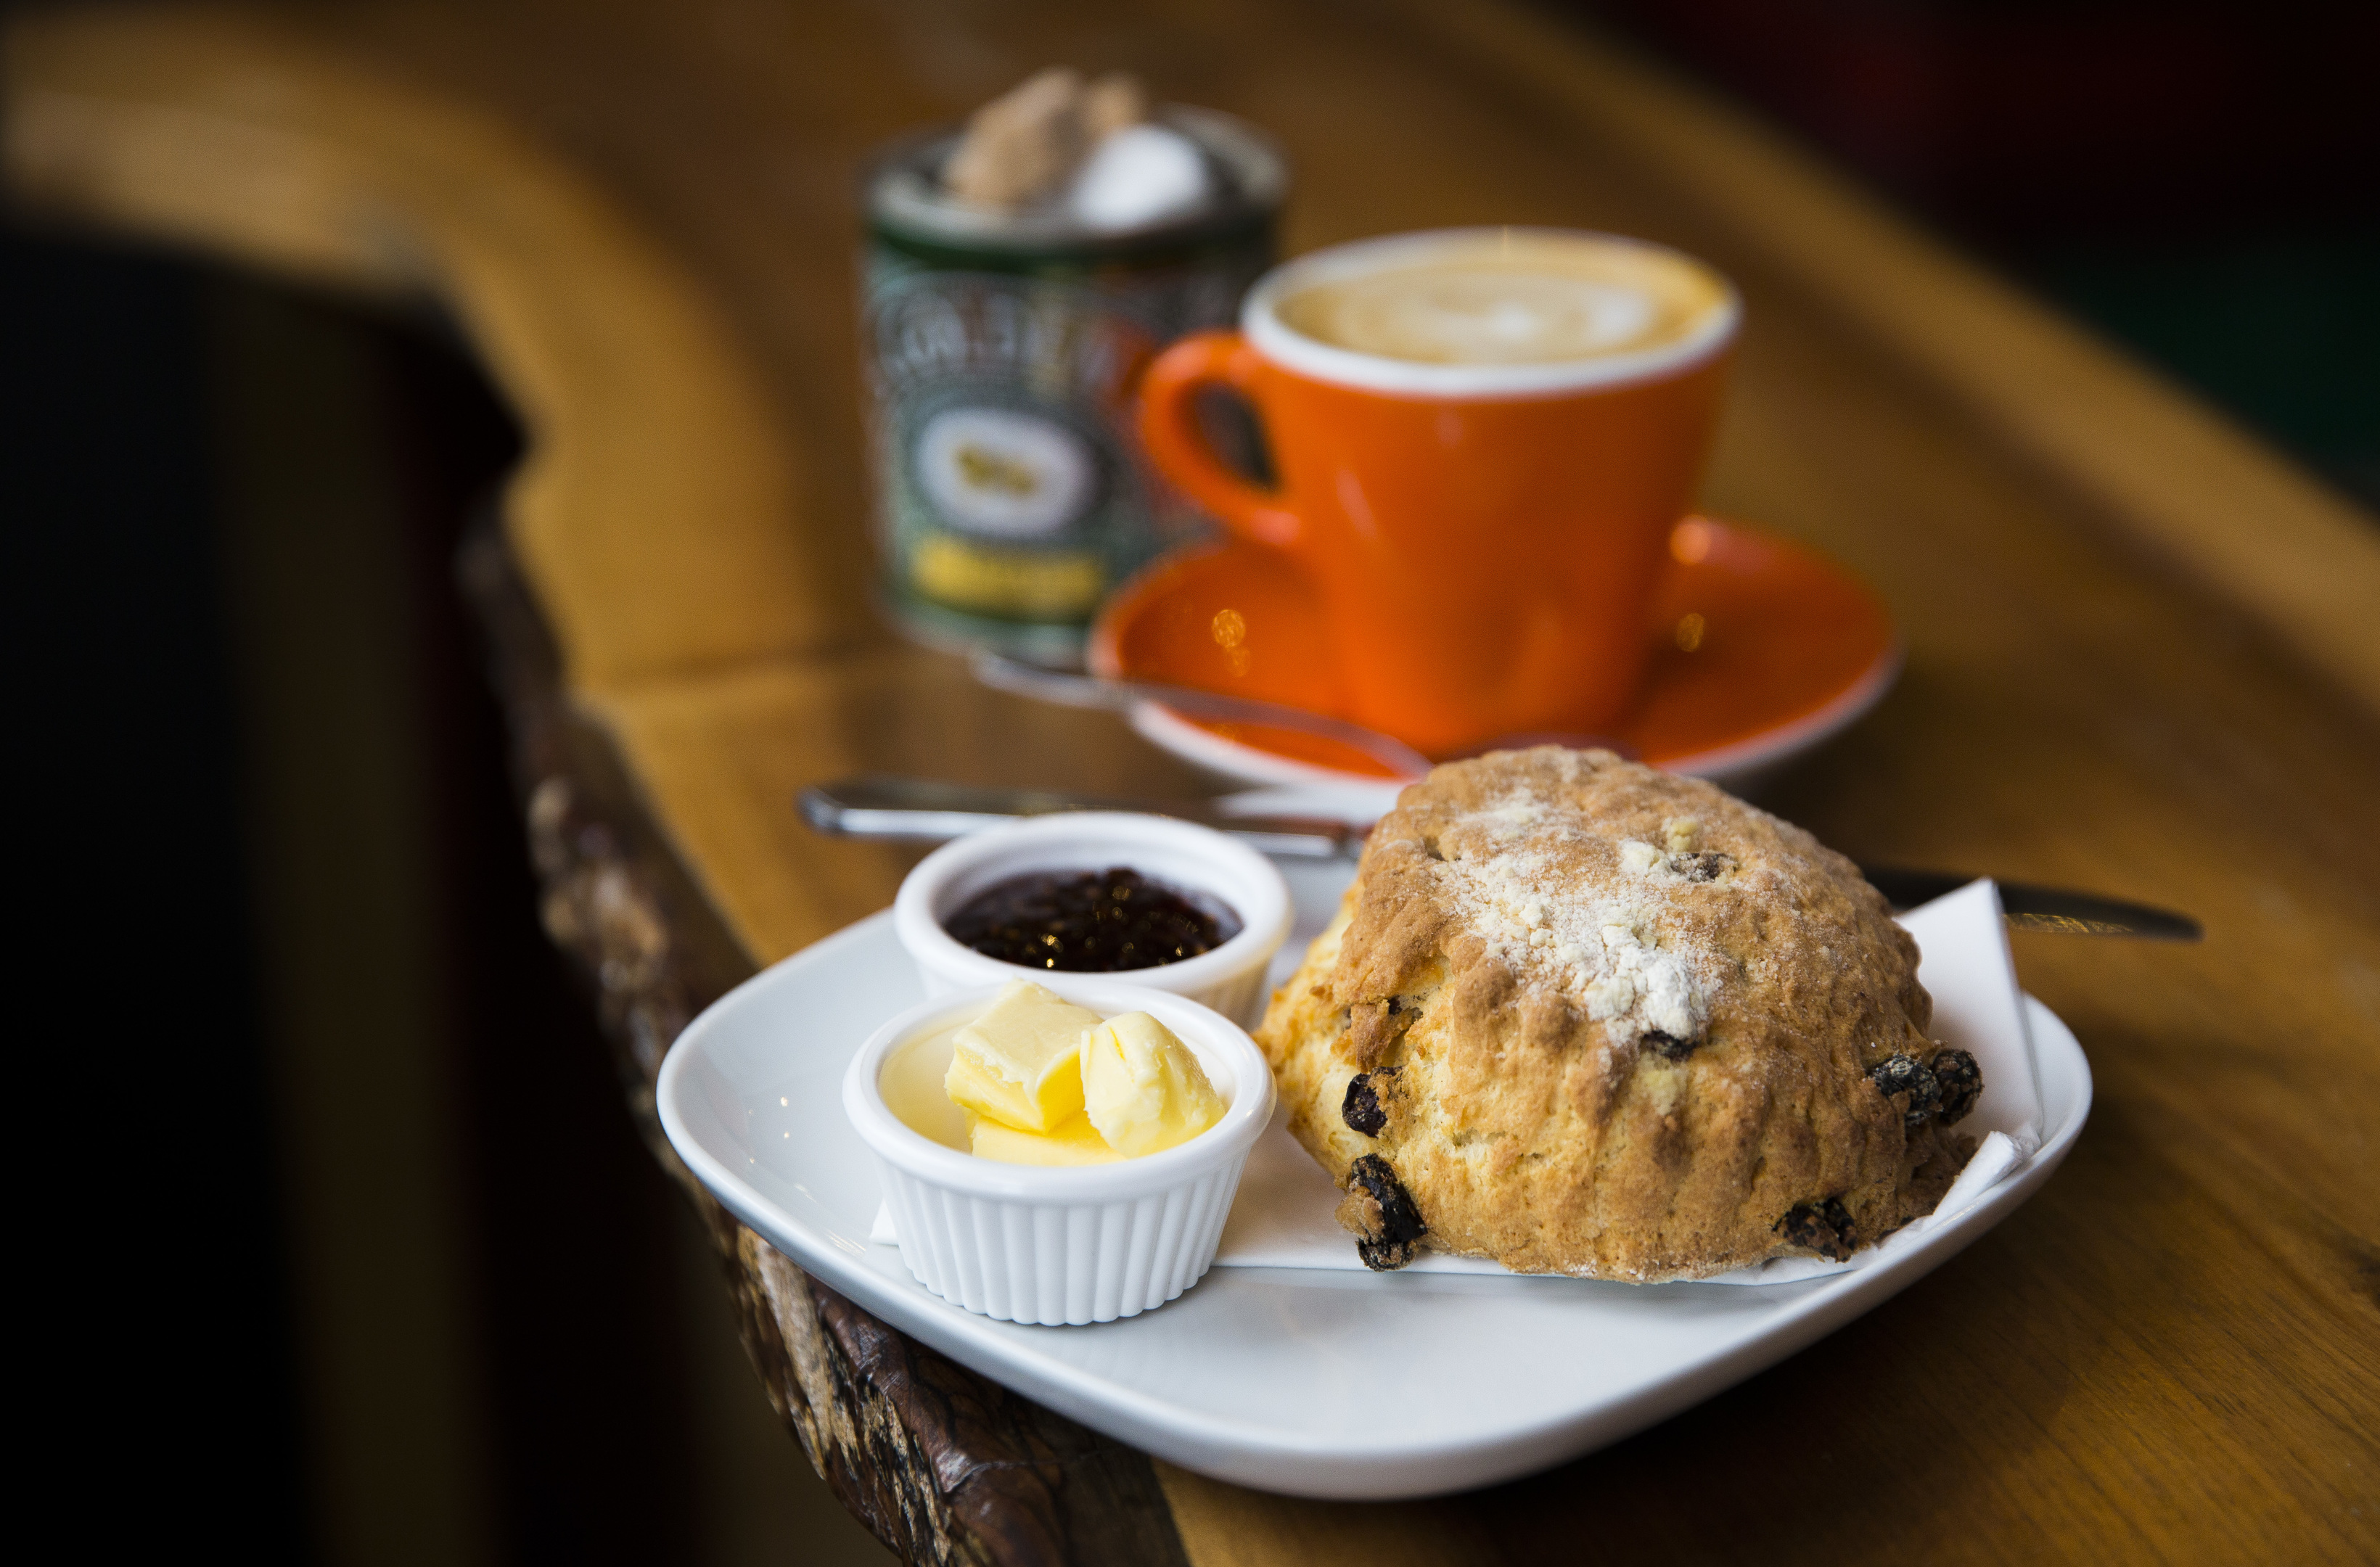 Scone Spy was impressed on a visit to the cafe (Jamie Williamson)